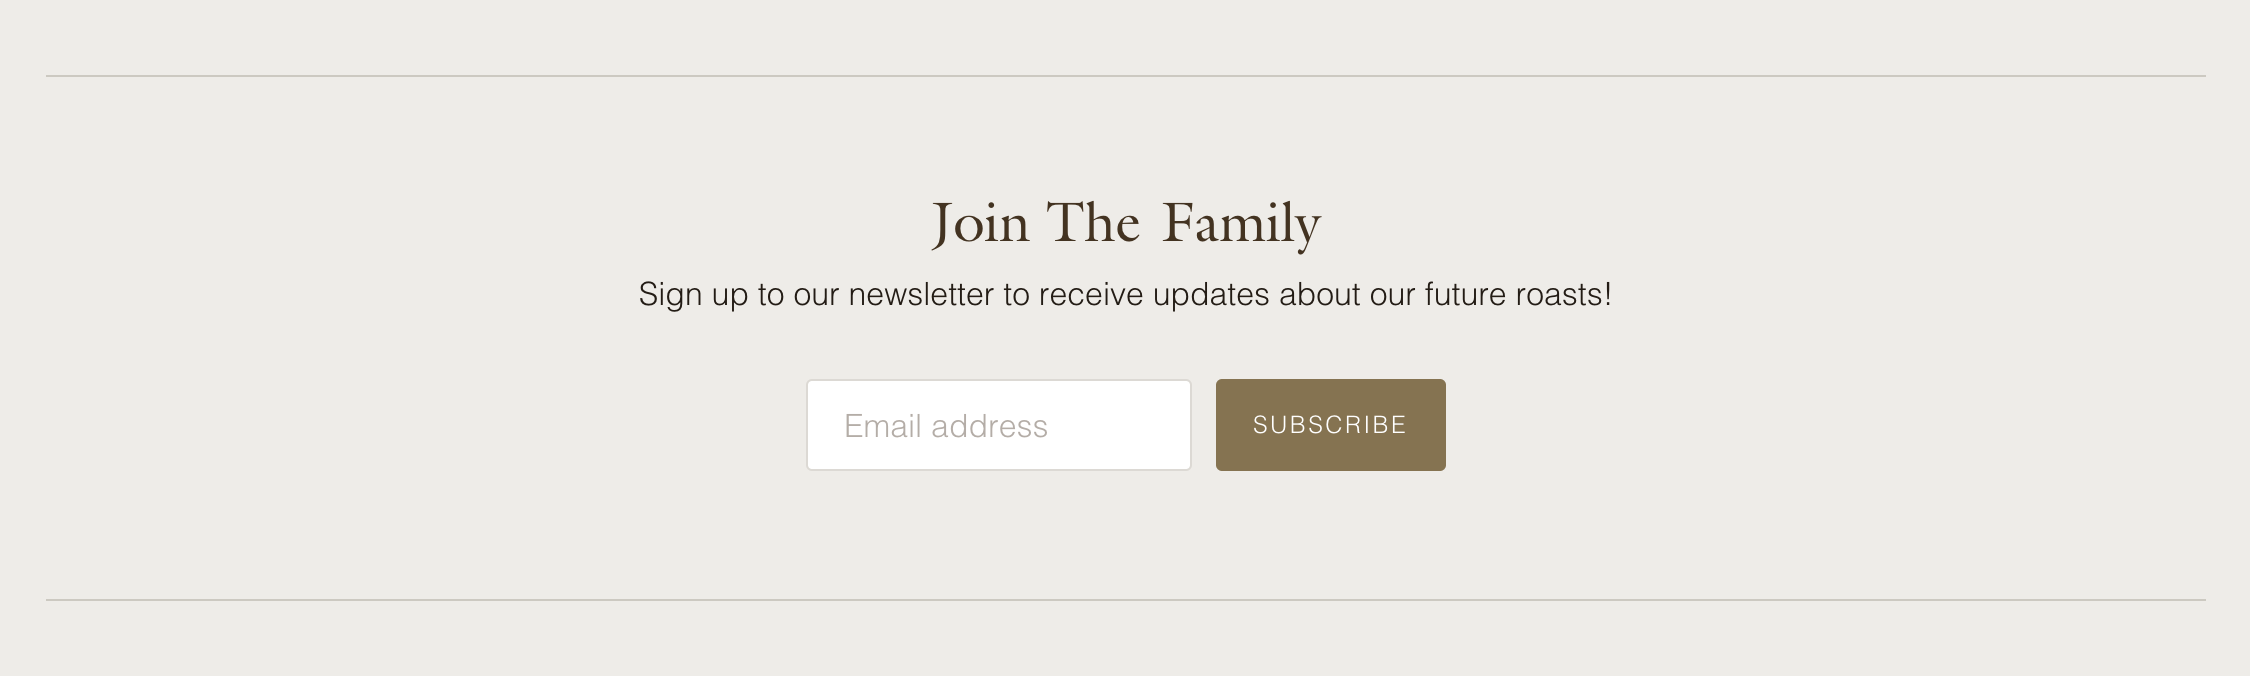 newsletter_signup_on_home_page.png